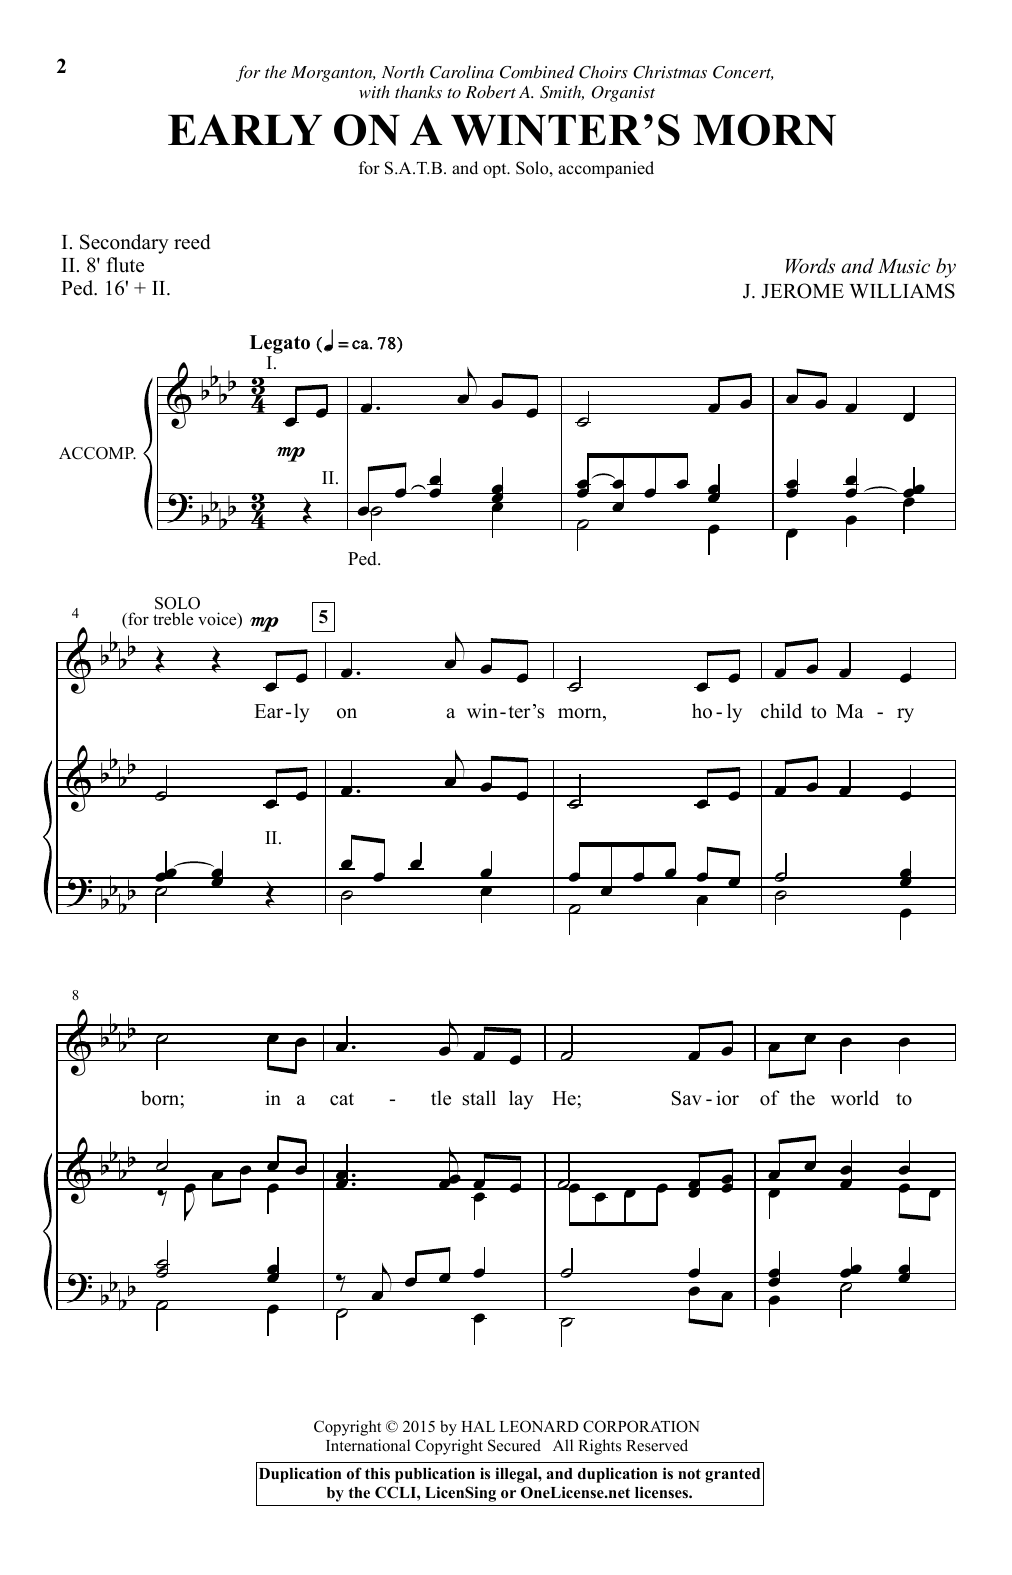 Early On A Winter's Morn Sheet Music